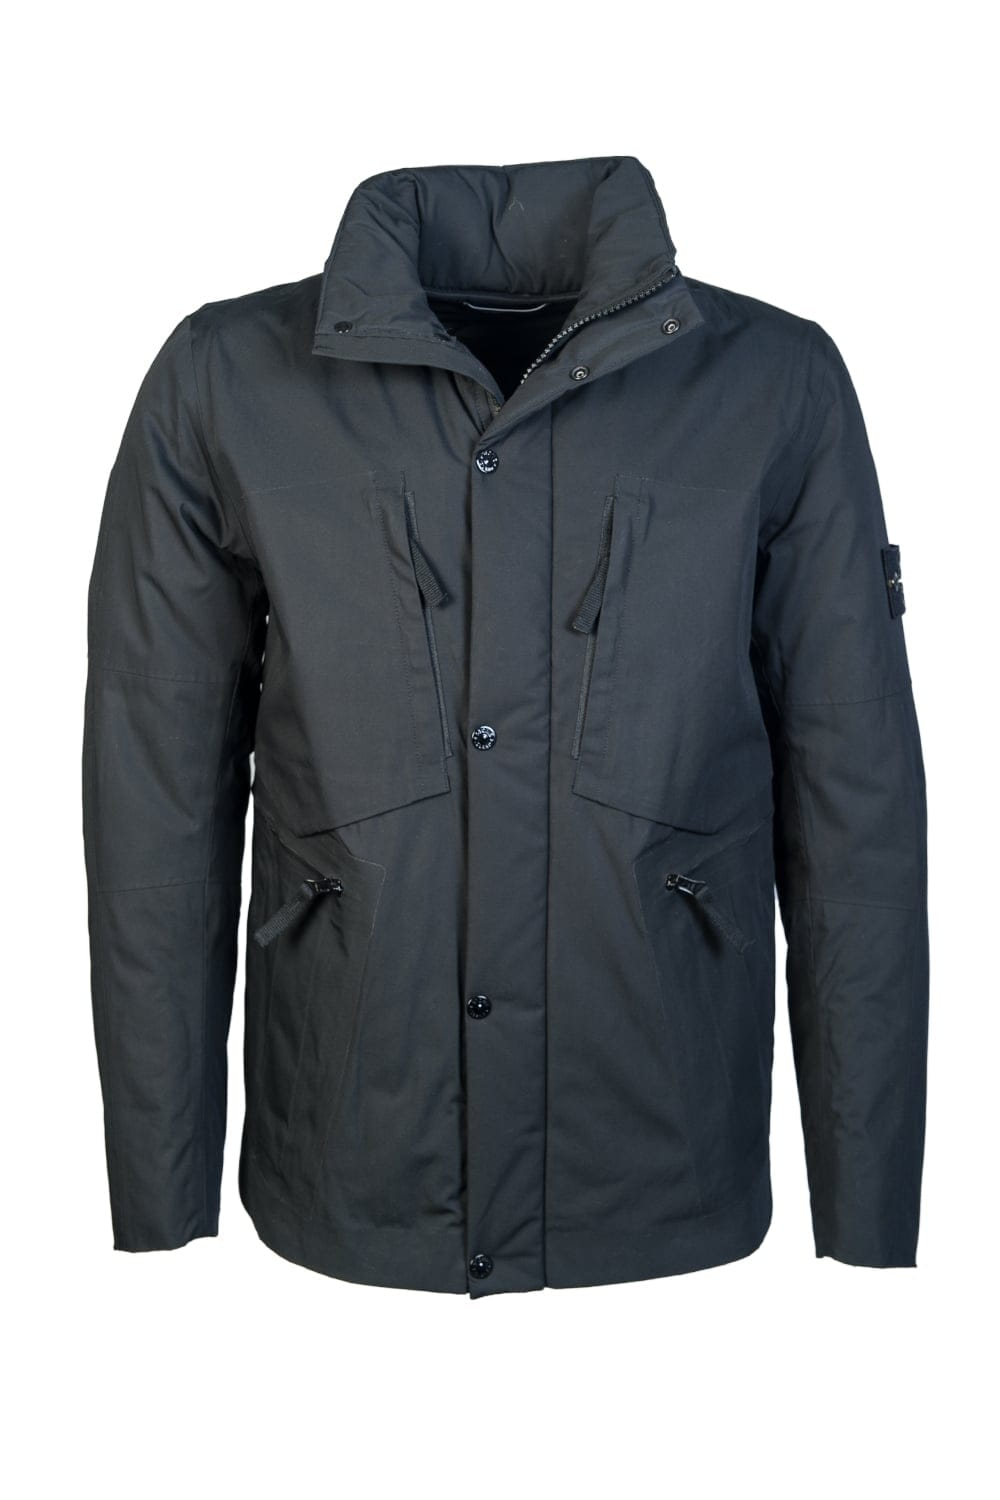 stone island jacket 651541525 clothing from sage clothing uk. Black Bedroom Furniture Sets. Home Design Ideas